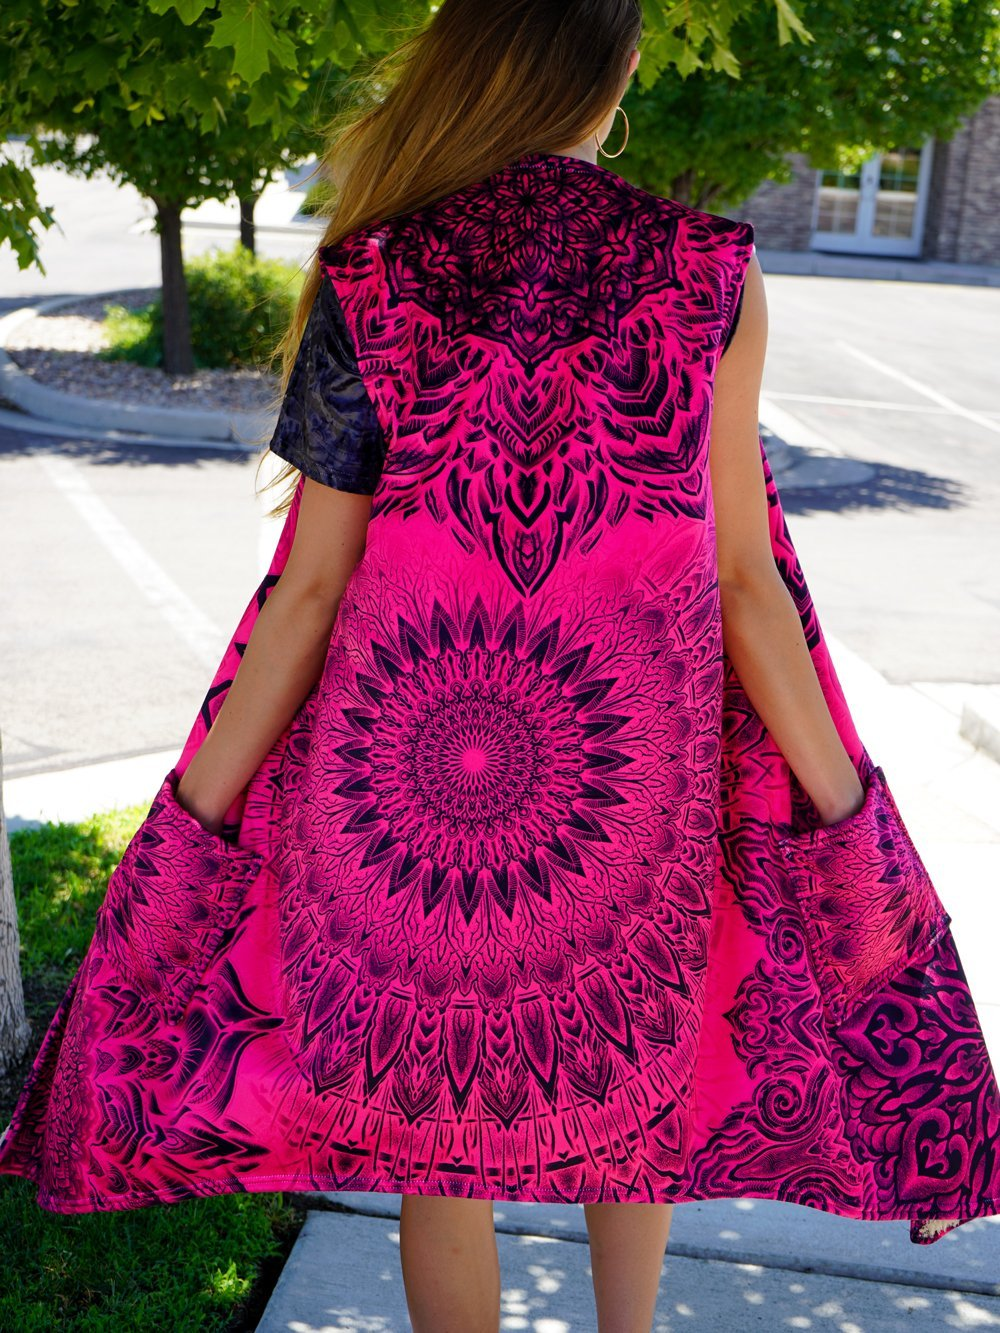 Pink Mandala Burn Summer Dream Cloak Dream Coat Electro Threads